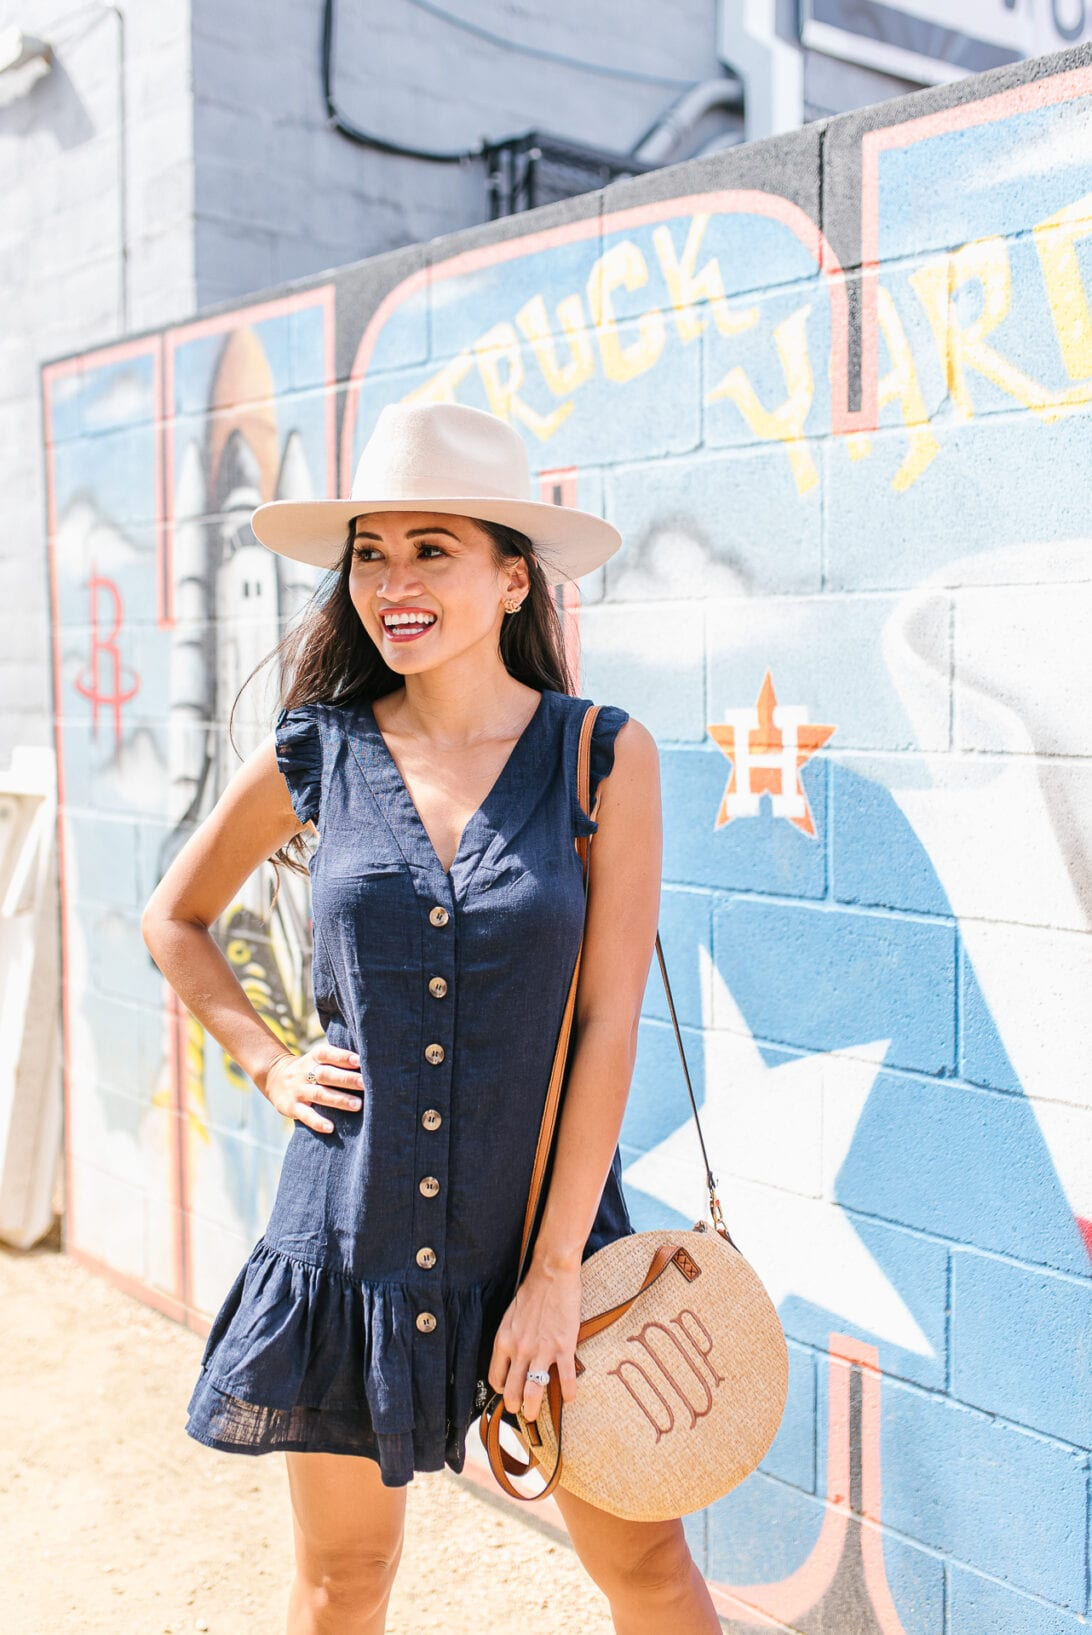 Houston astros, game day outfit, monogrammed bag